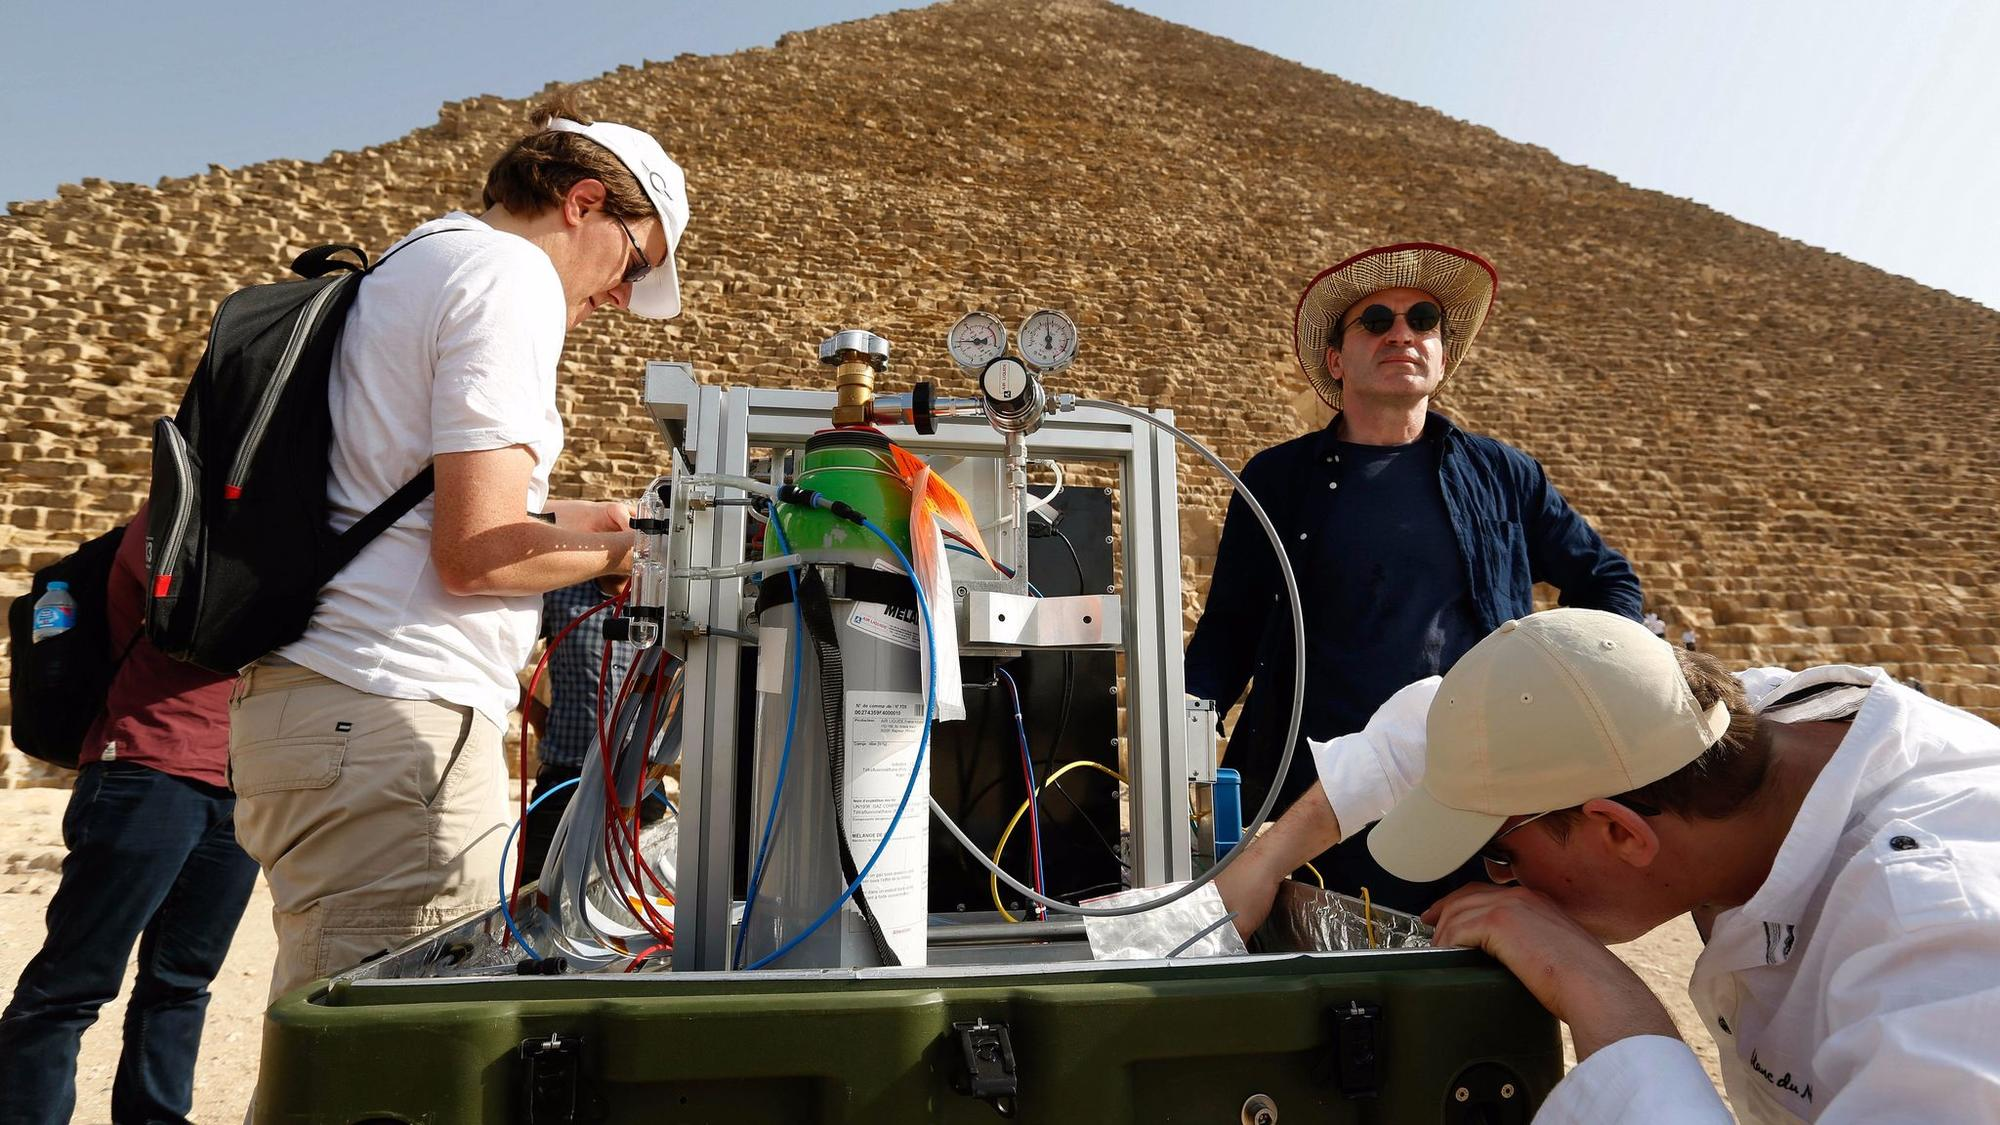 Members of the research team prepare to study the pyramid's interior.